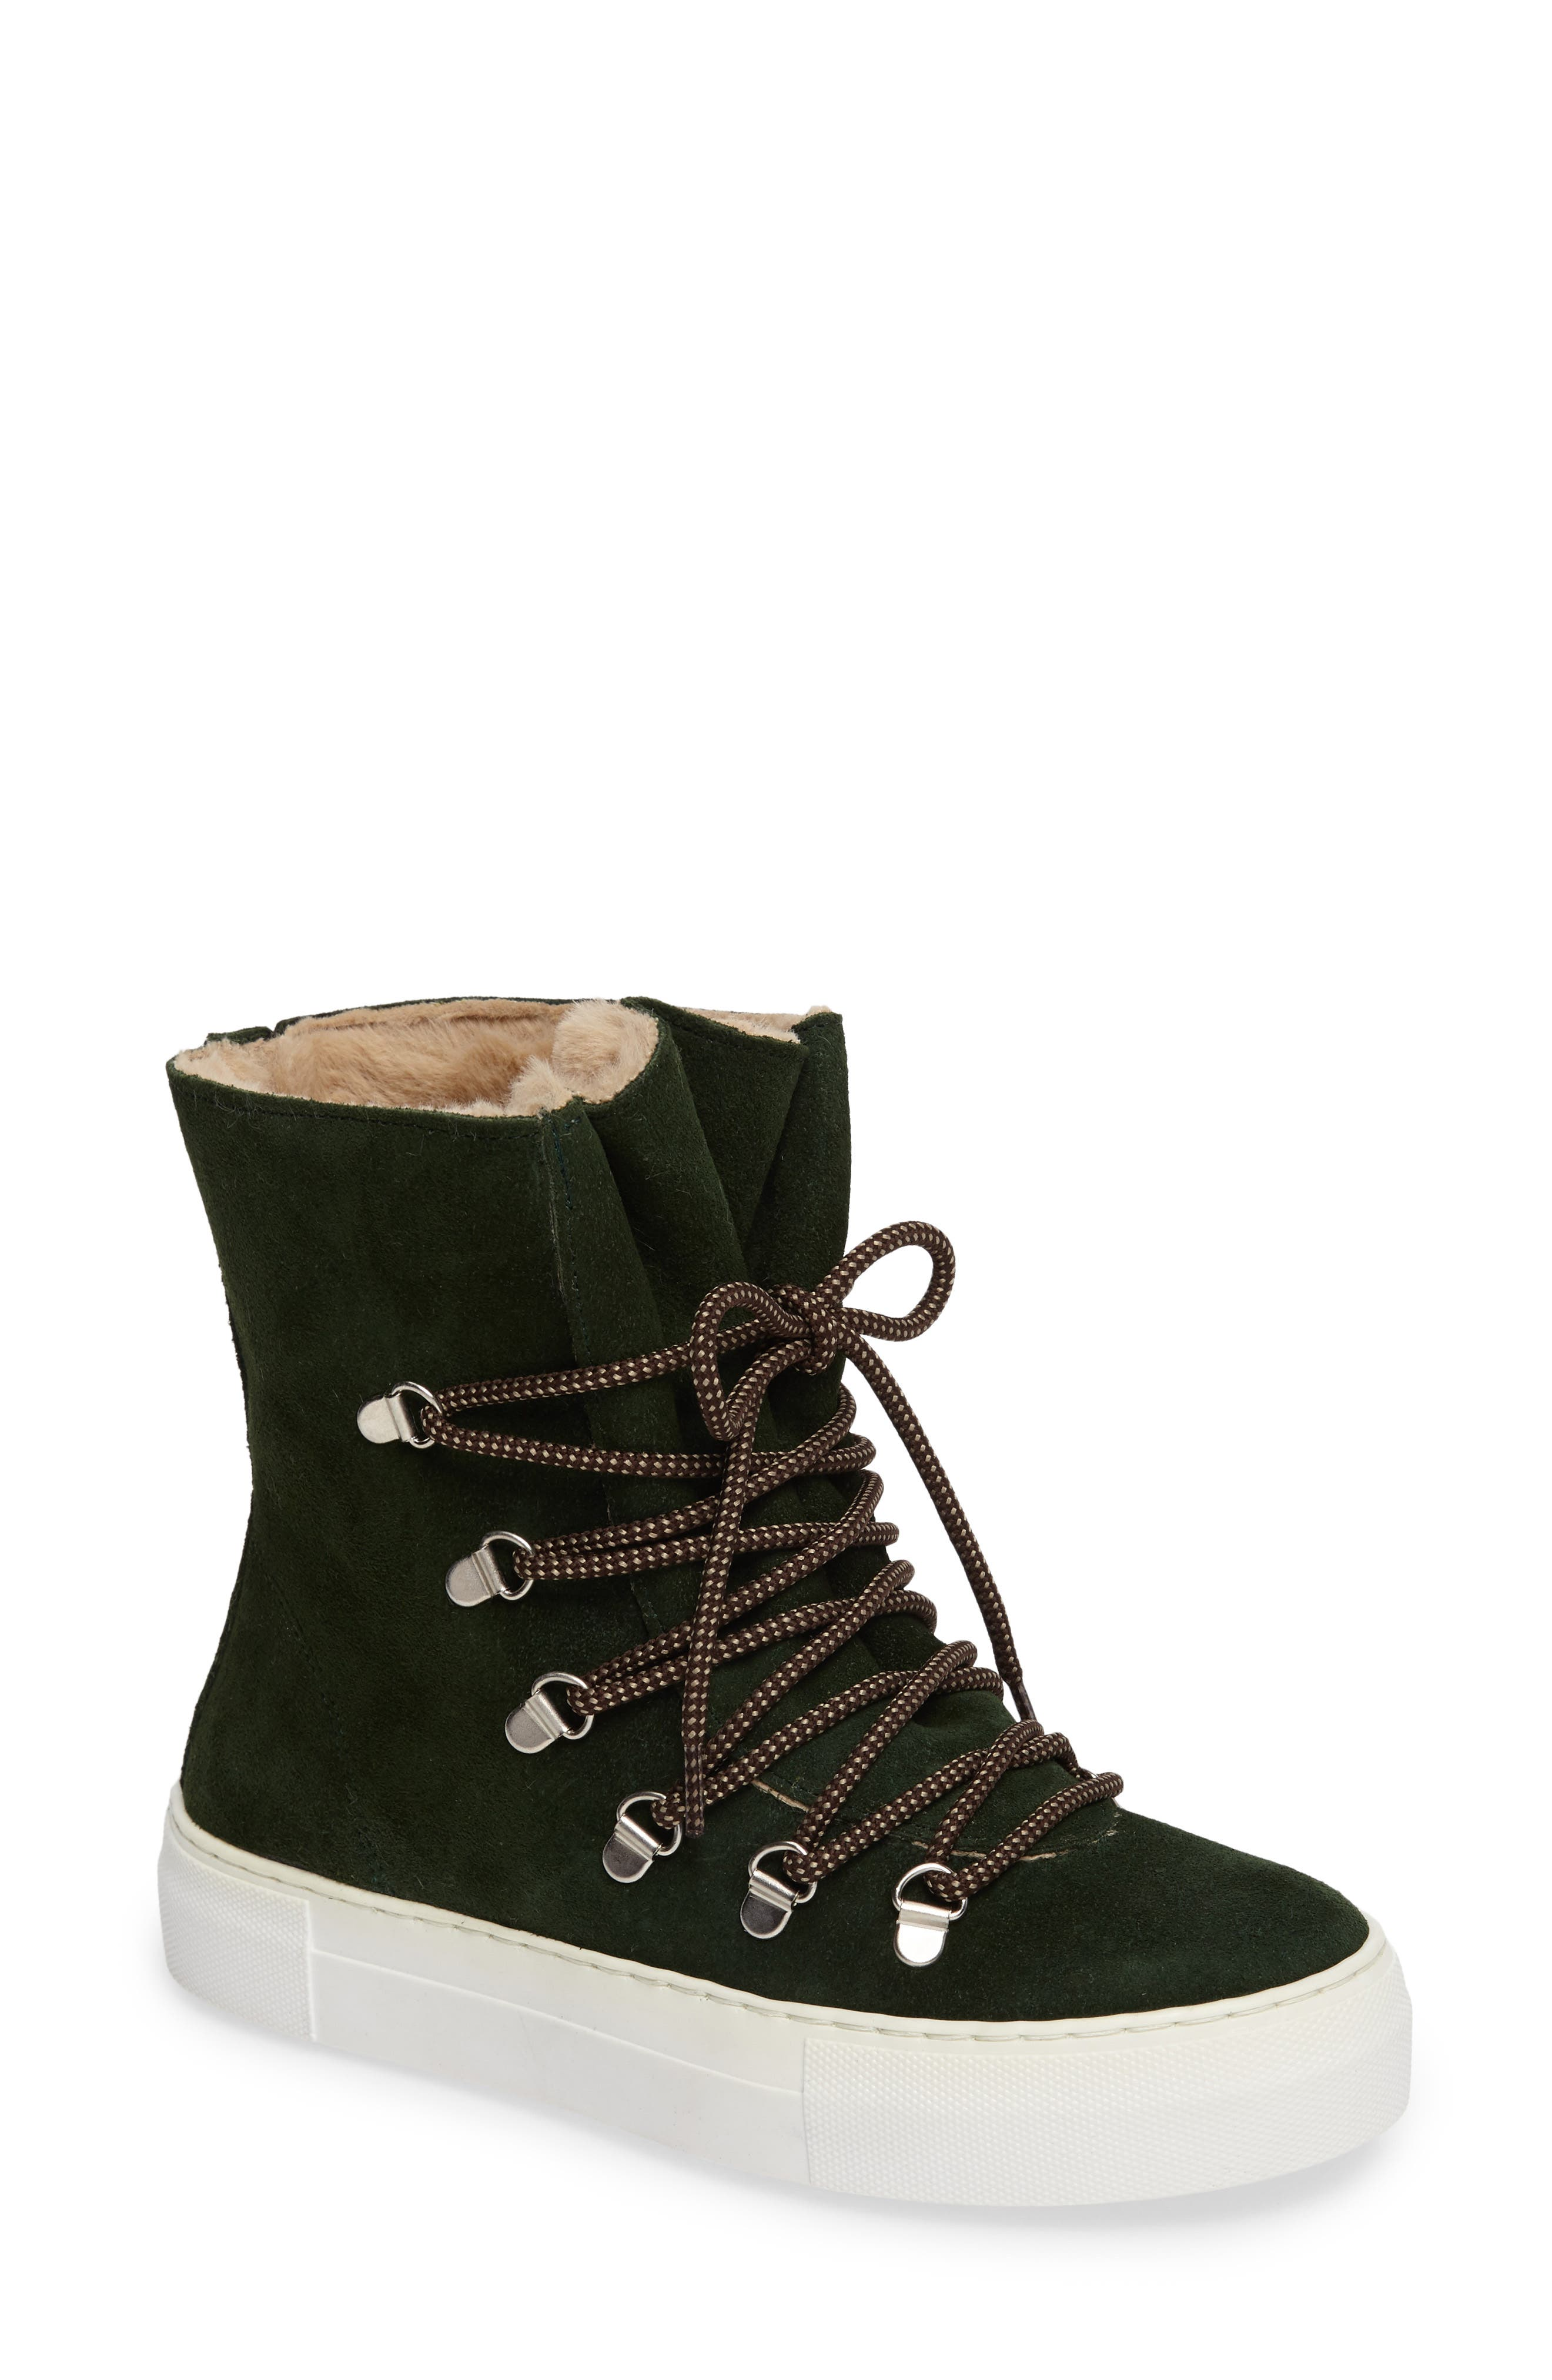 Cimone High Top Sneaker,                             Main thumbnail 1, color,                             Green Suede